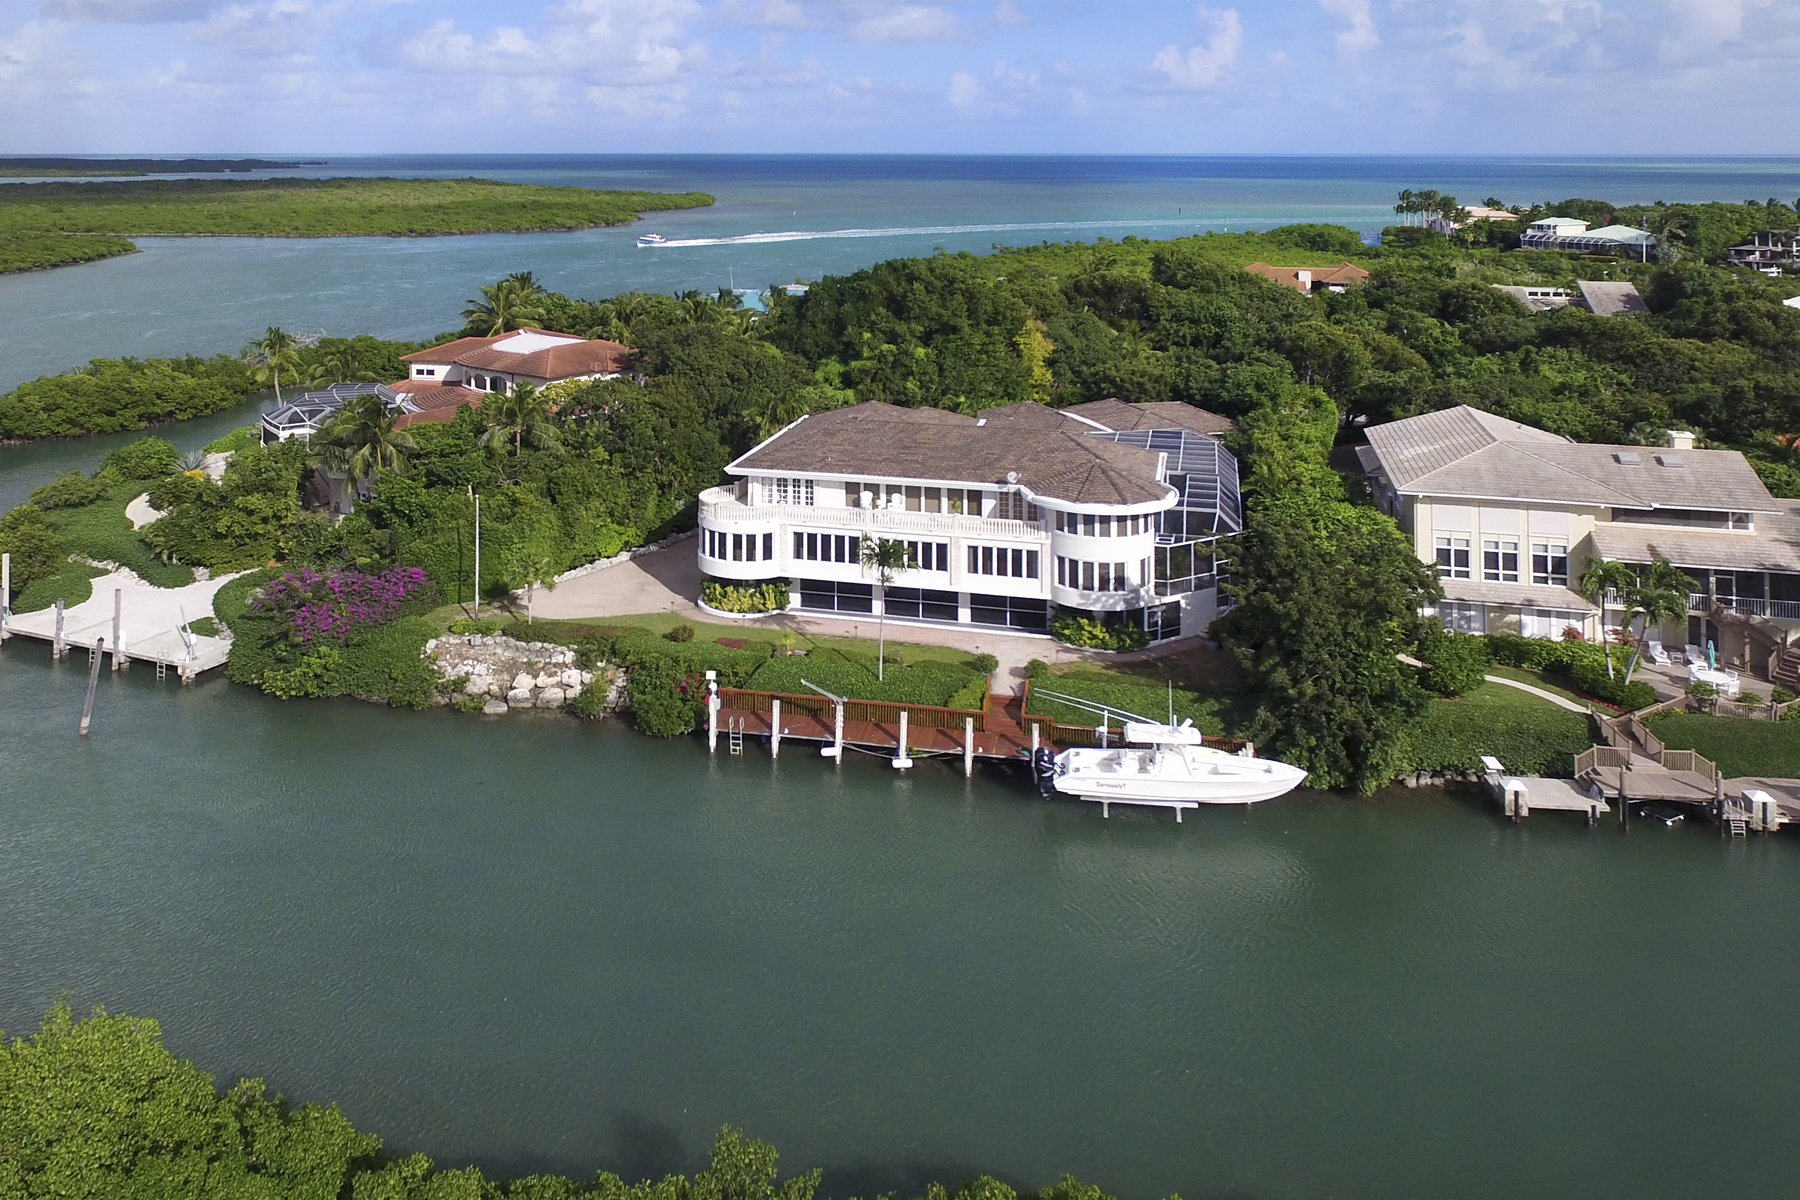 Casa Unifamiliar por un Venta en Exceptional Family Compound at Ocean Reef 34 Cardinal Lane Ocean Reef Community, Key Largo, Florida, 33037 Estados Unidos